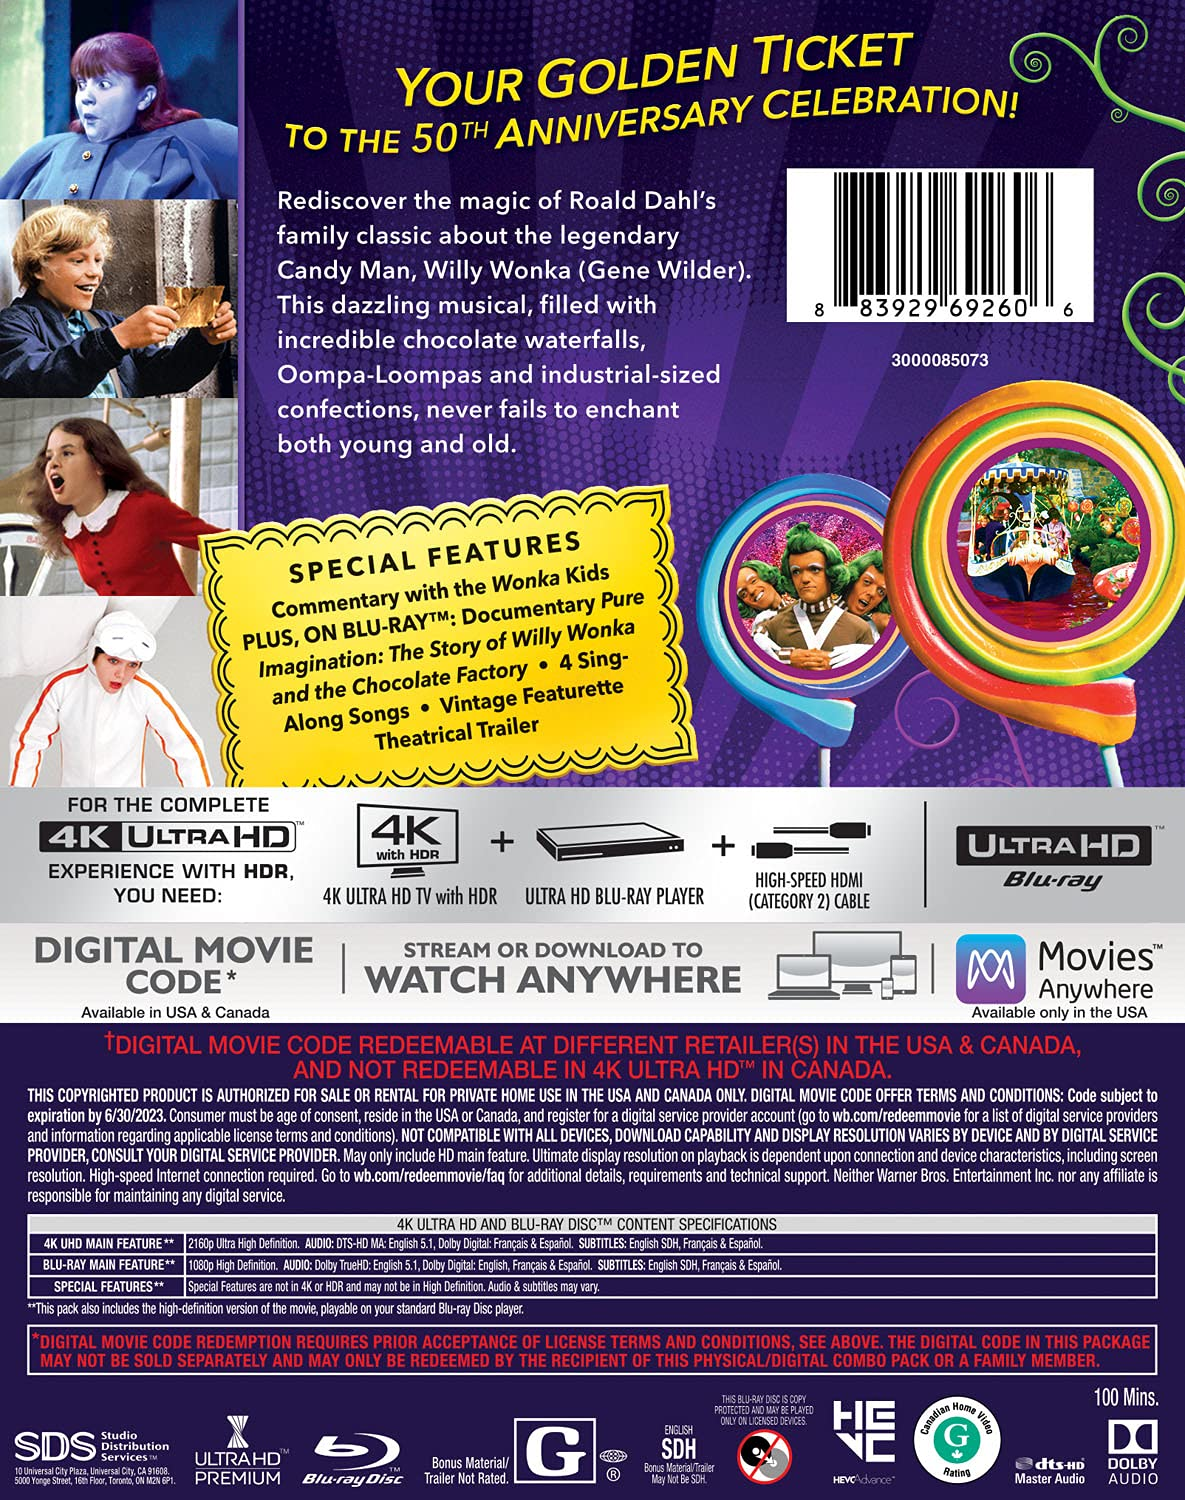 Willy Wonka & the Chocolate Factory 4k Blu-ray back